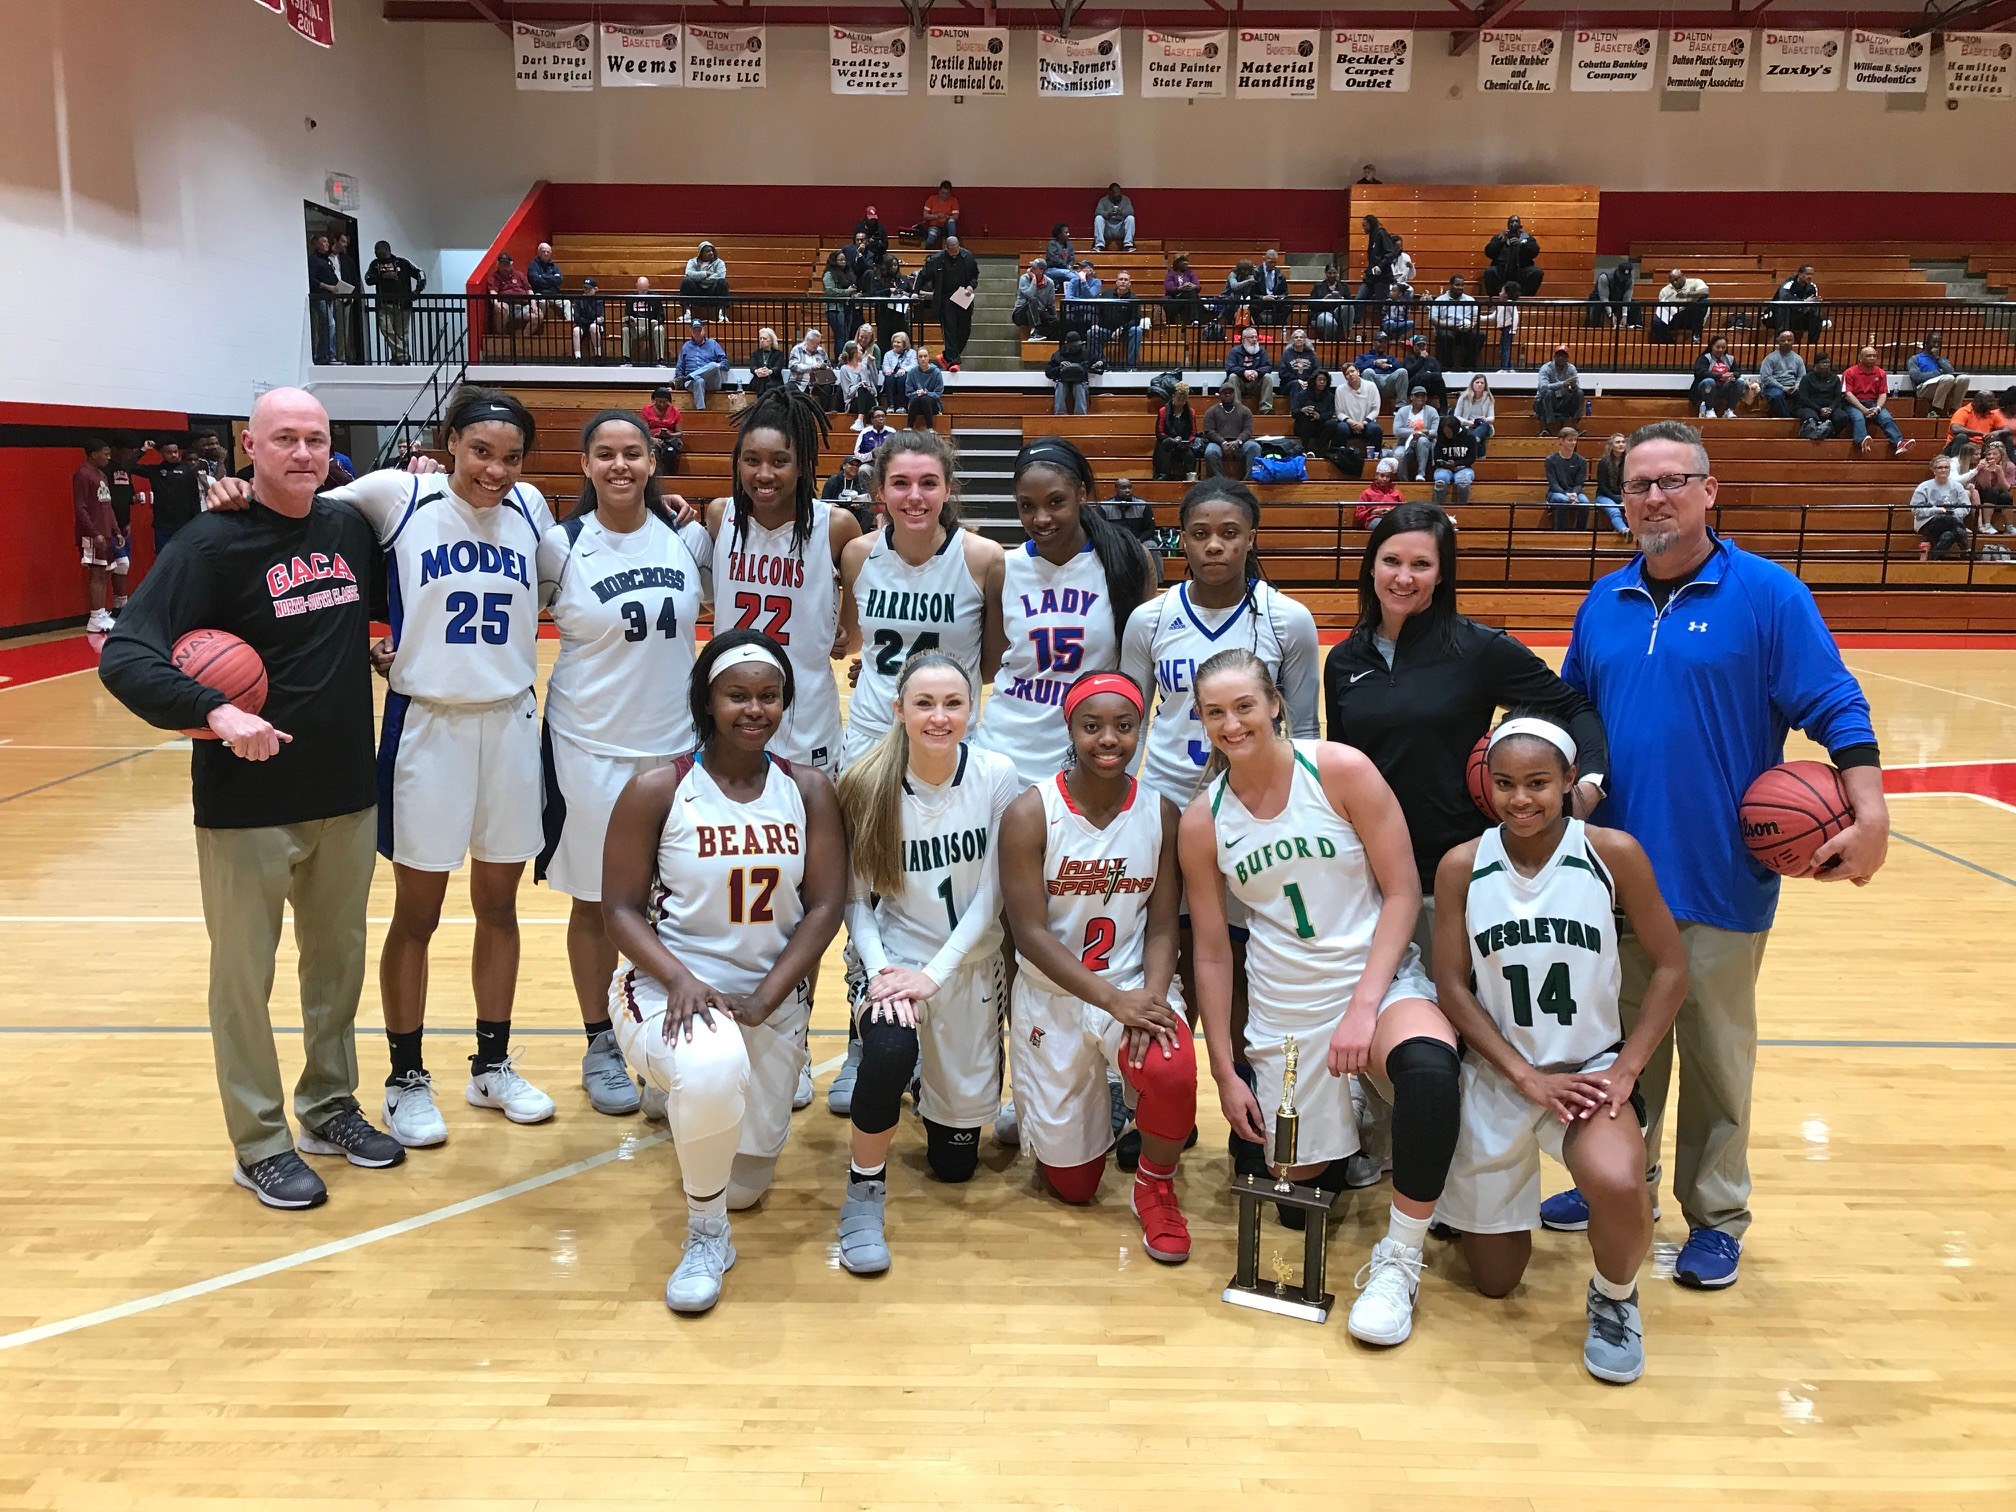 2018 GACA Senior Girls North All-Star Team